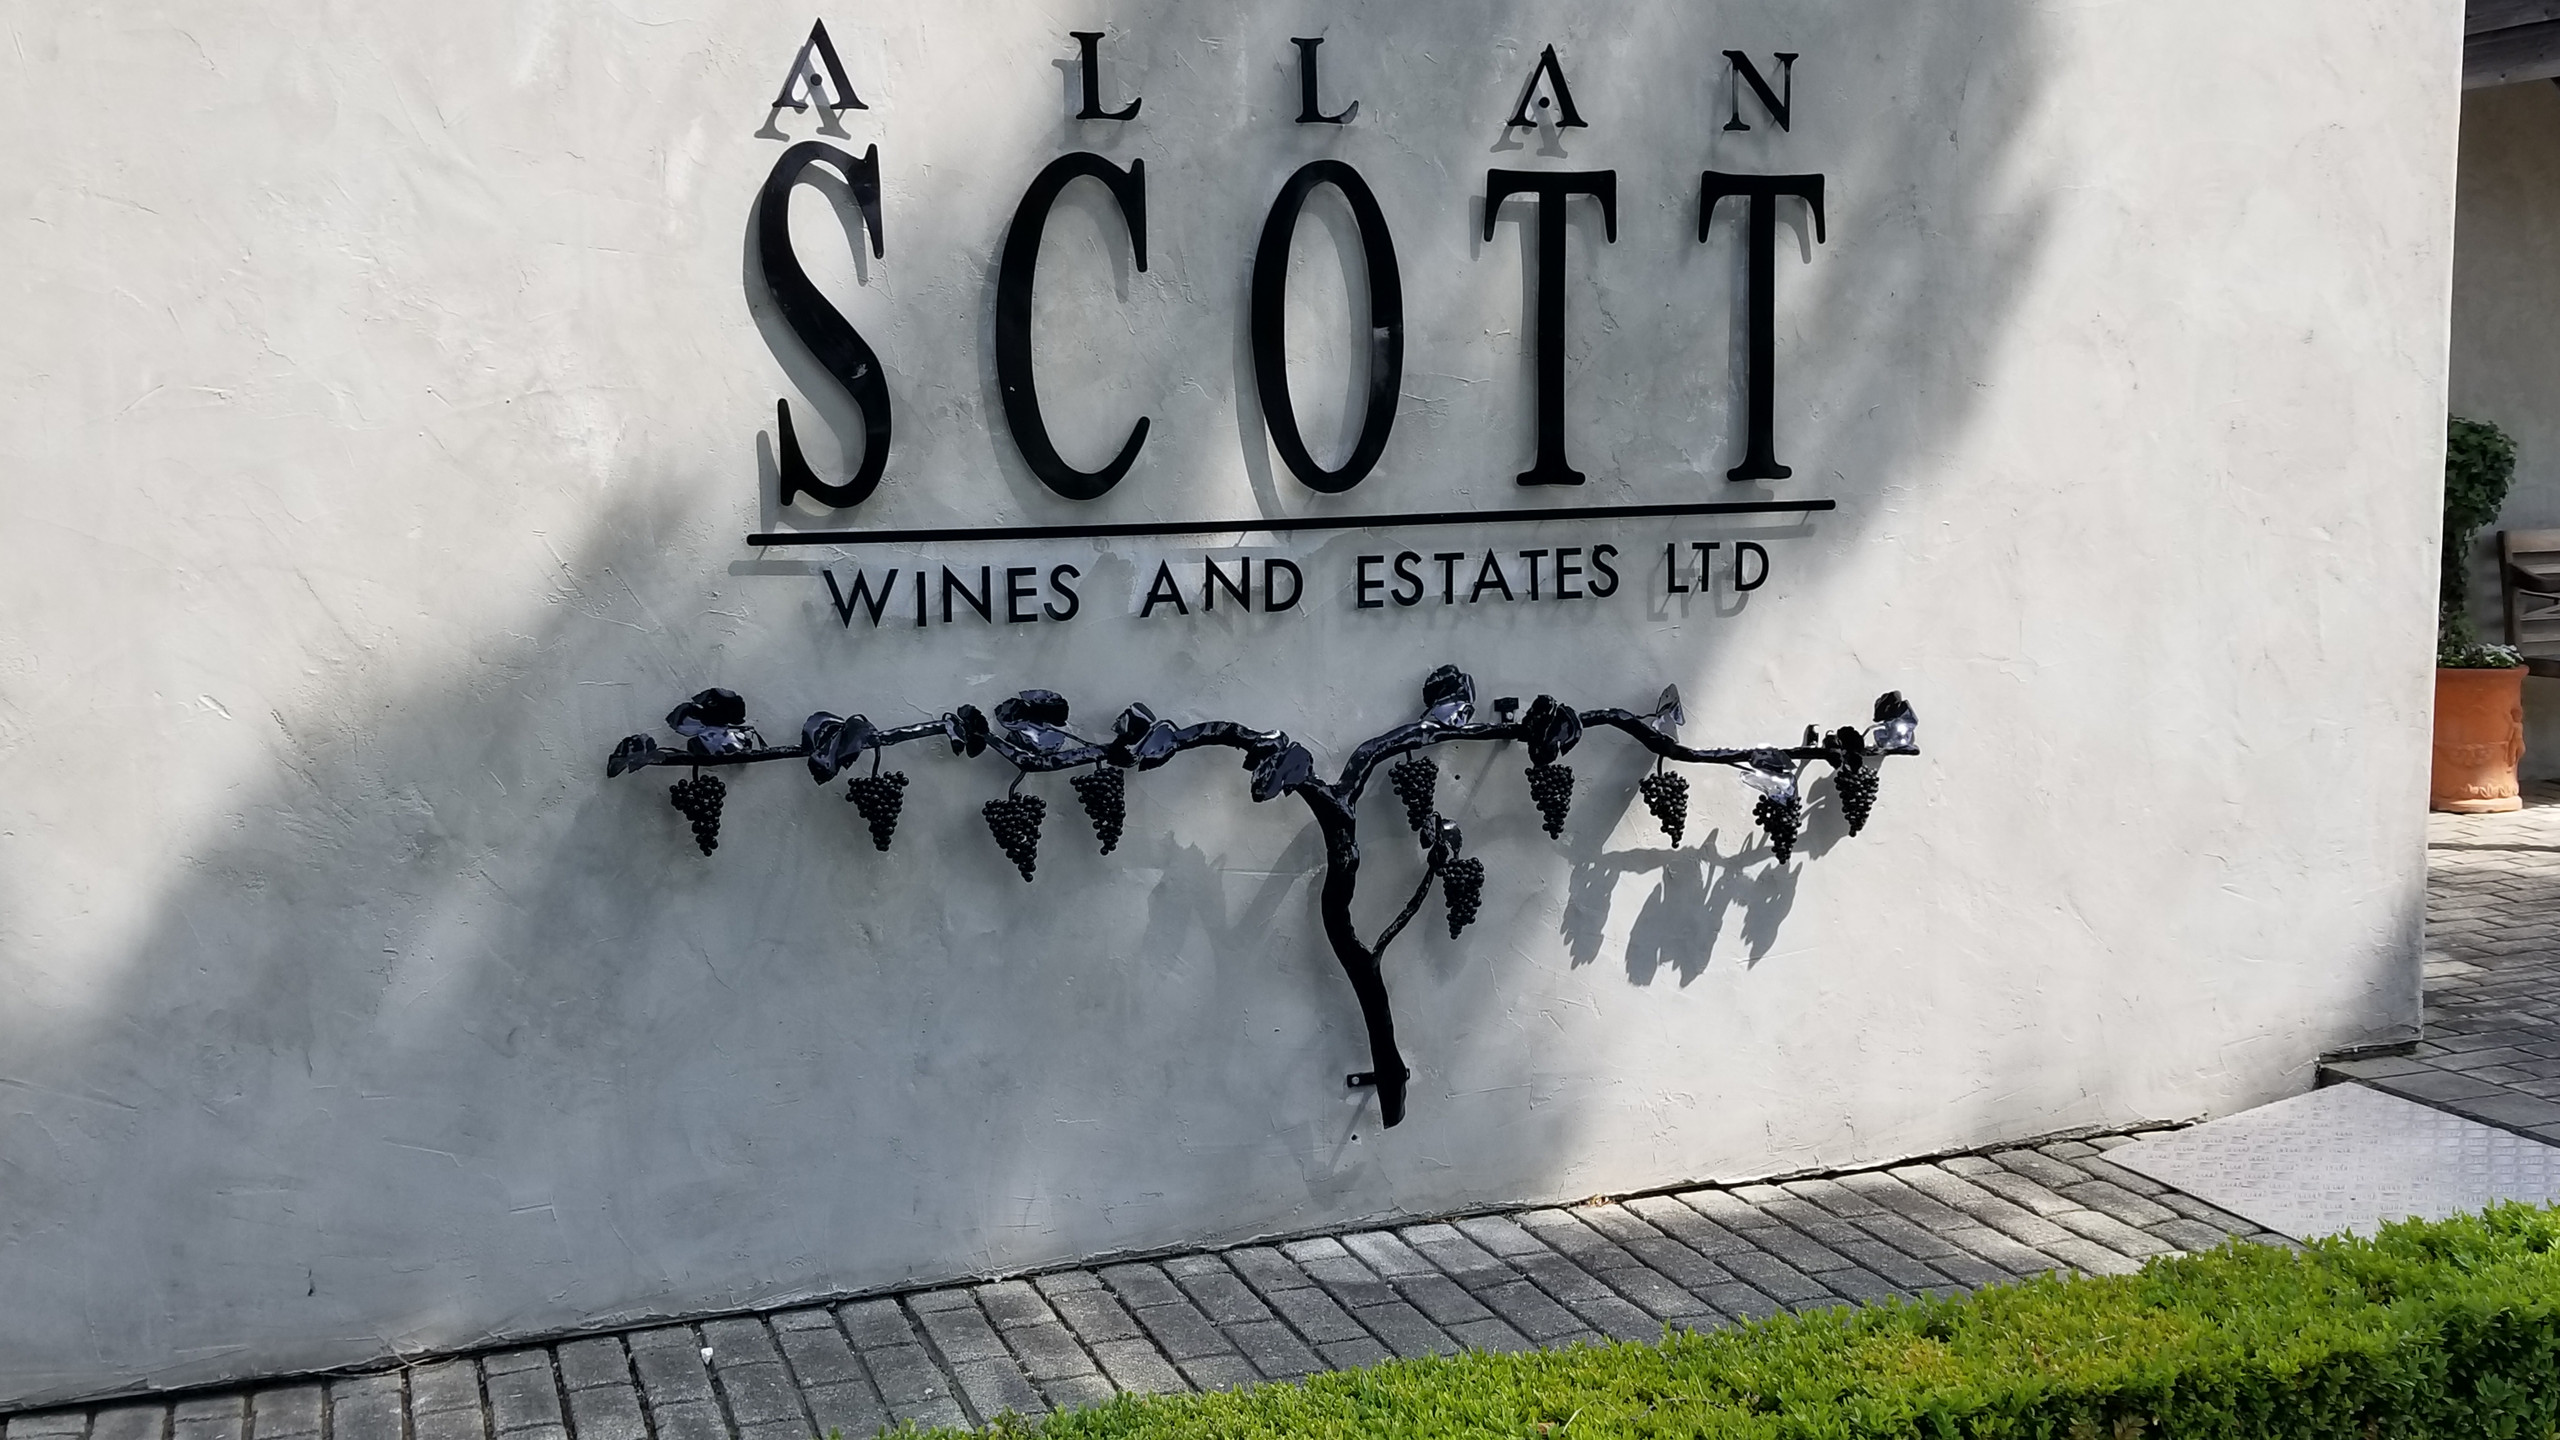 Allan Scott winery, Marlborough, New zealand travel blog